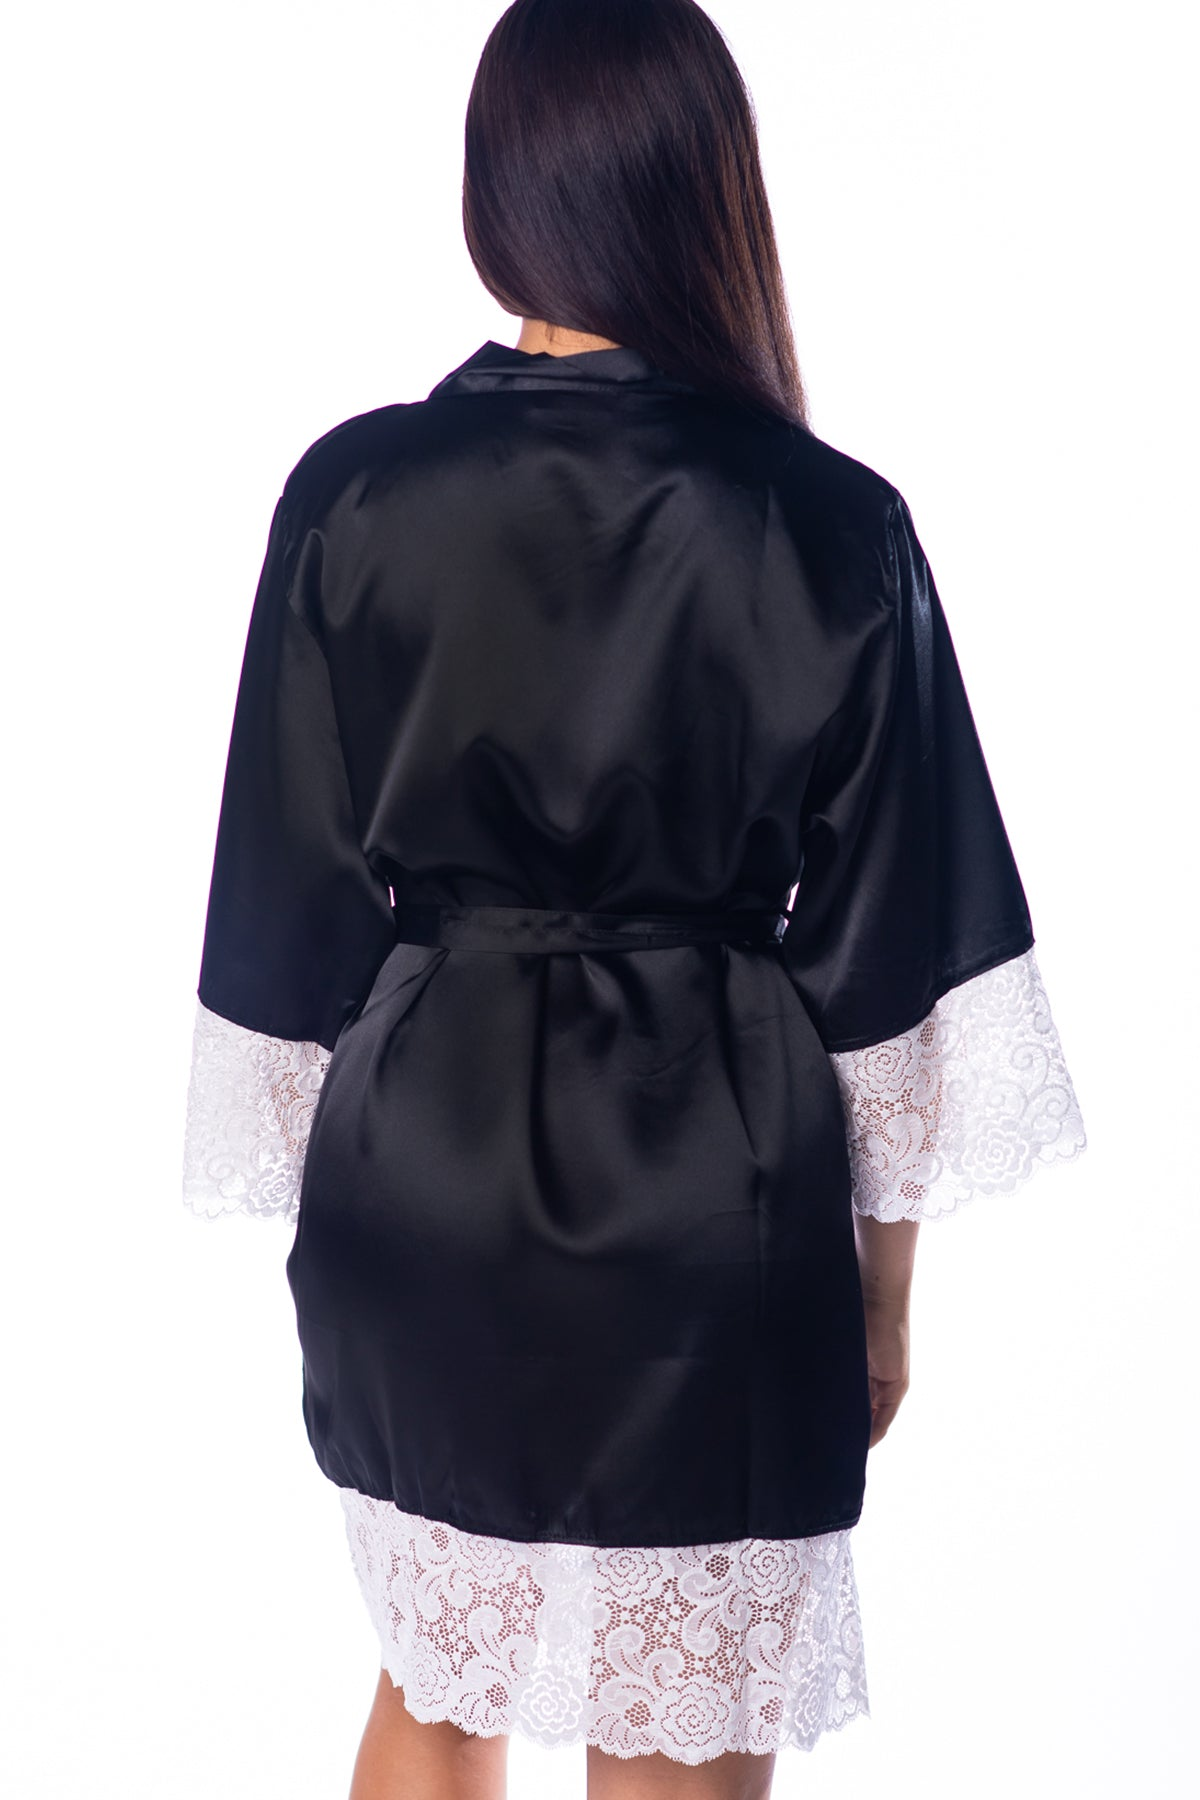 Black Lace Bridal Robe